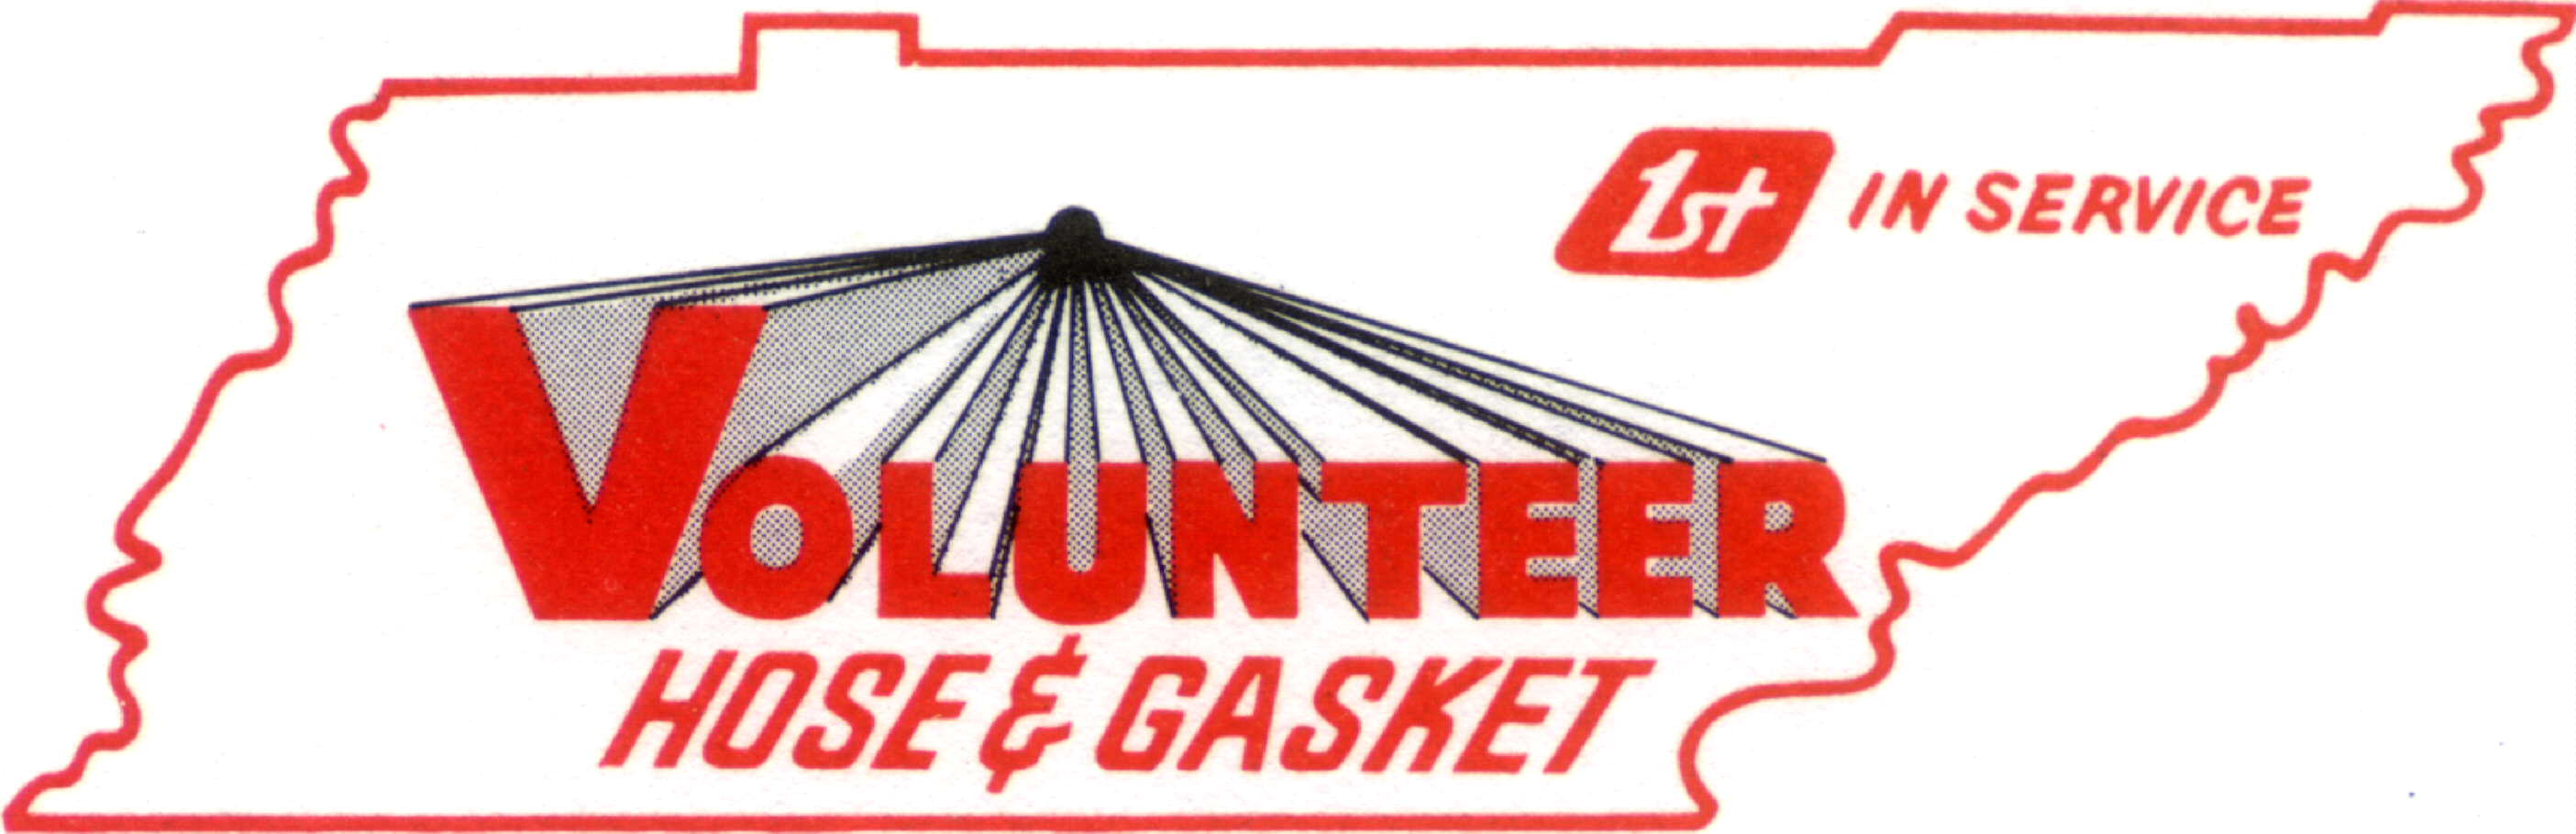 Volunteer Hose & Gasket